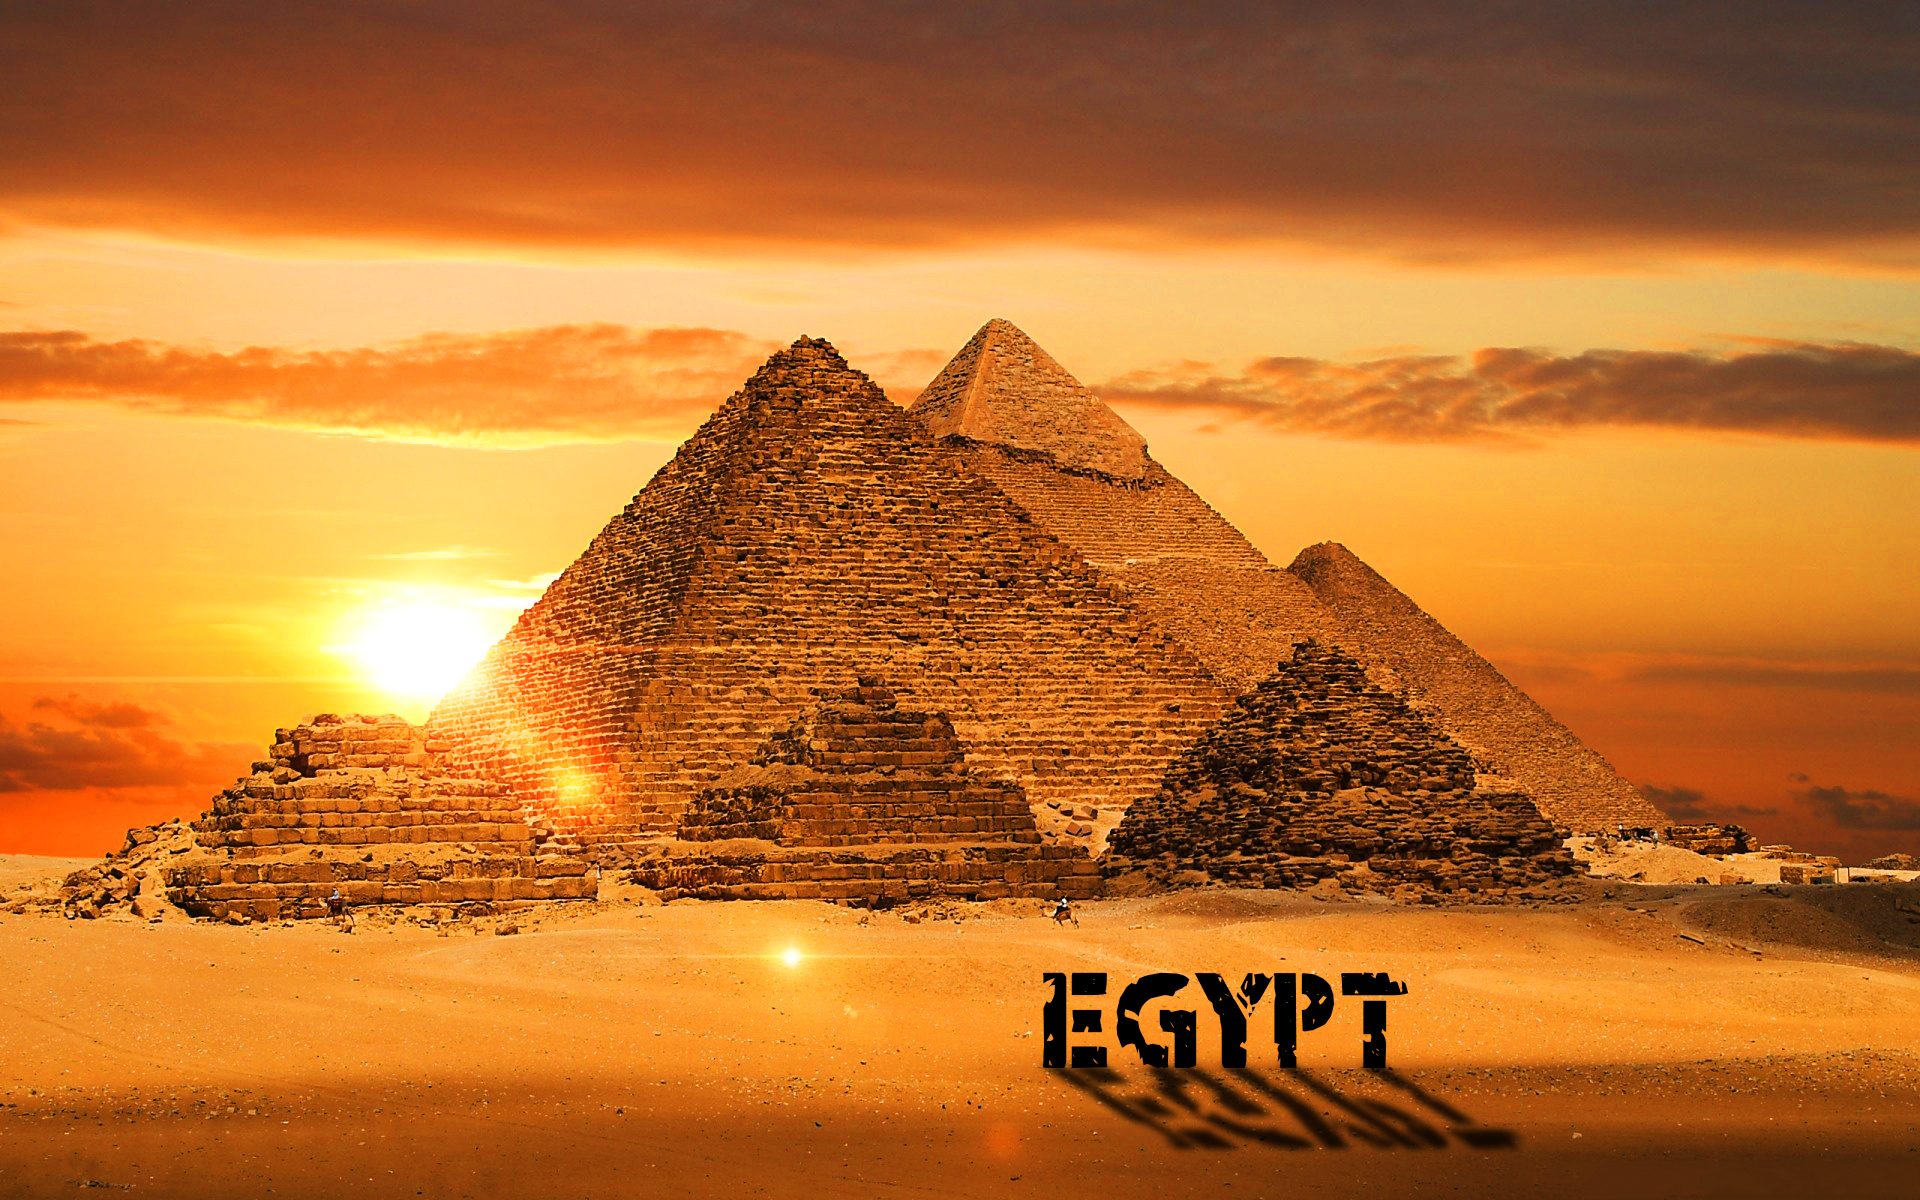 Sunset over Pyramids in Egypt